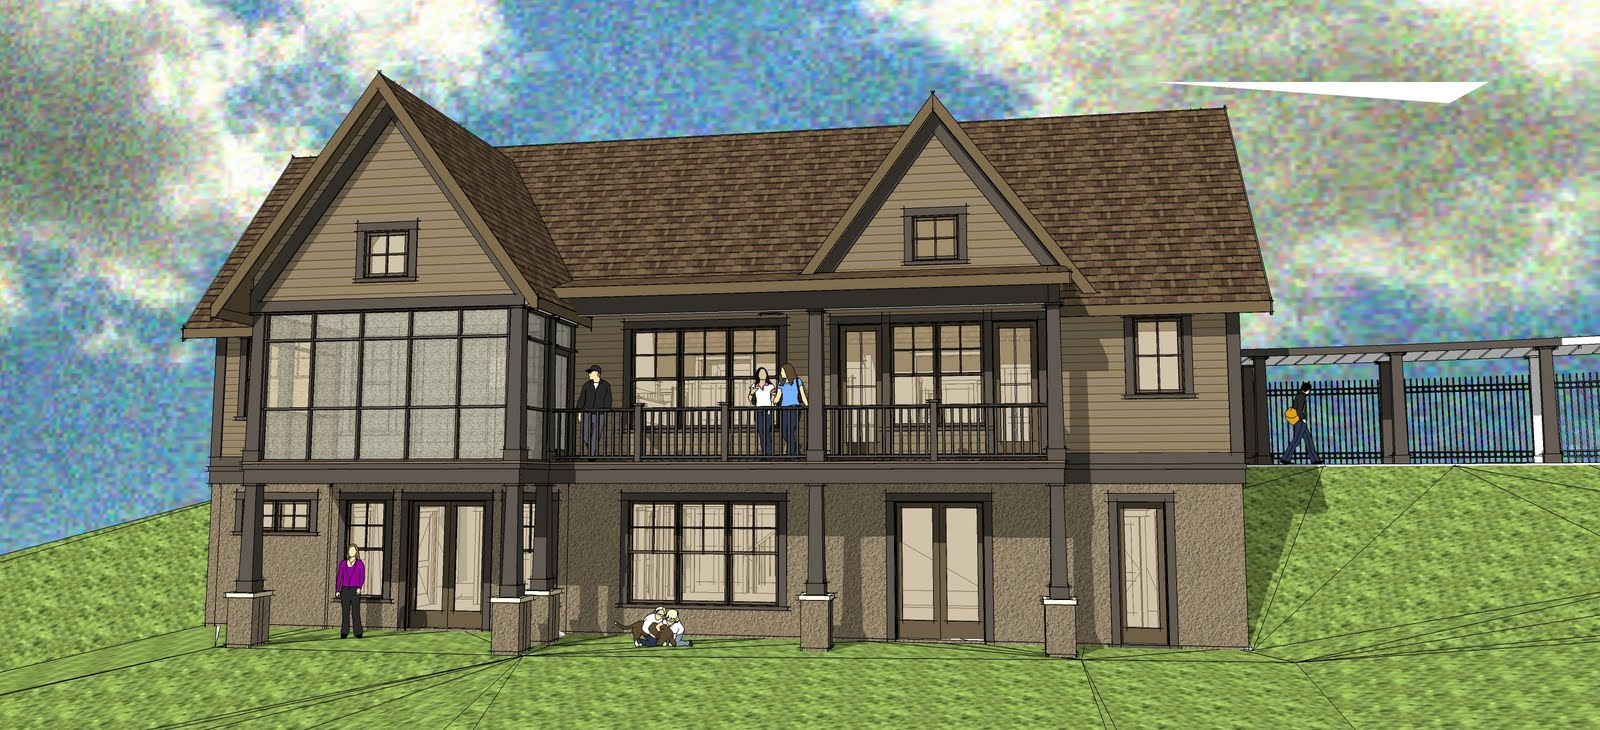 Simply elegant home designs blog may 2010 for Simply elegant house plans